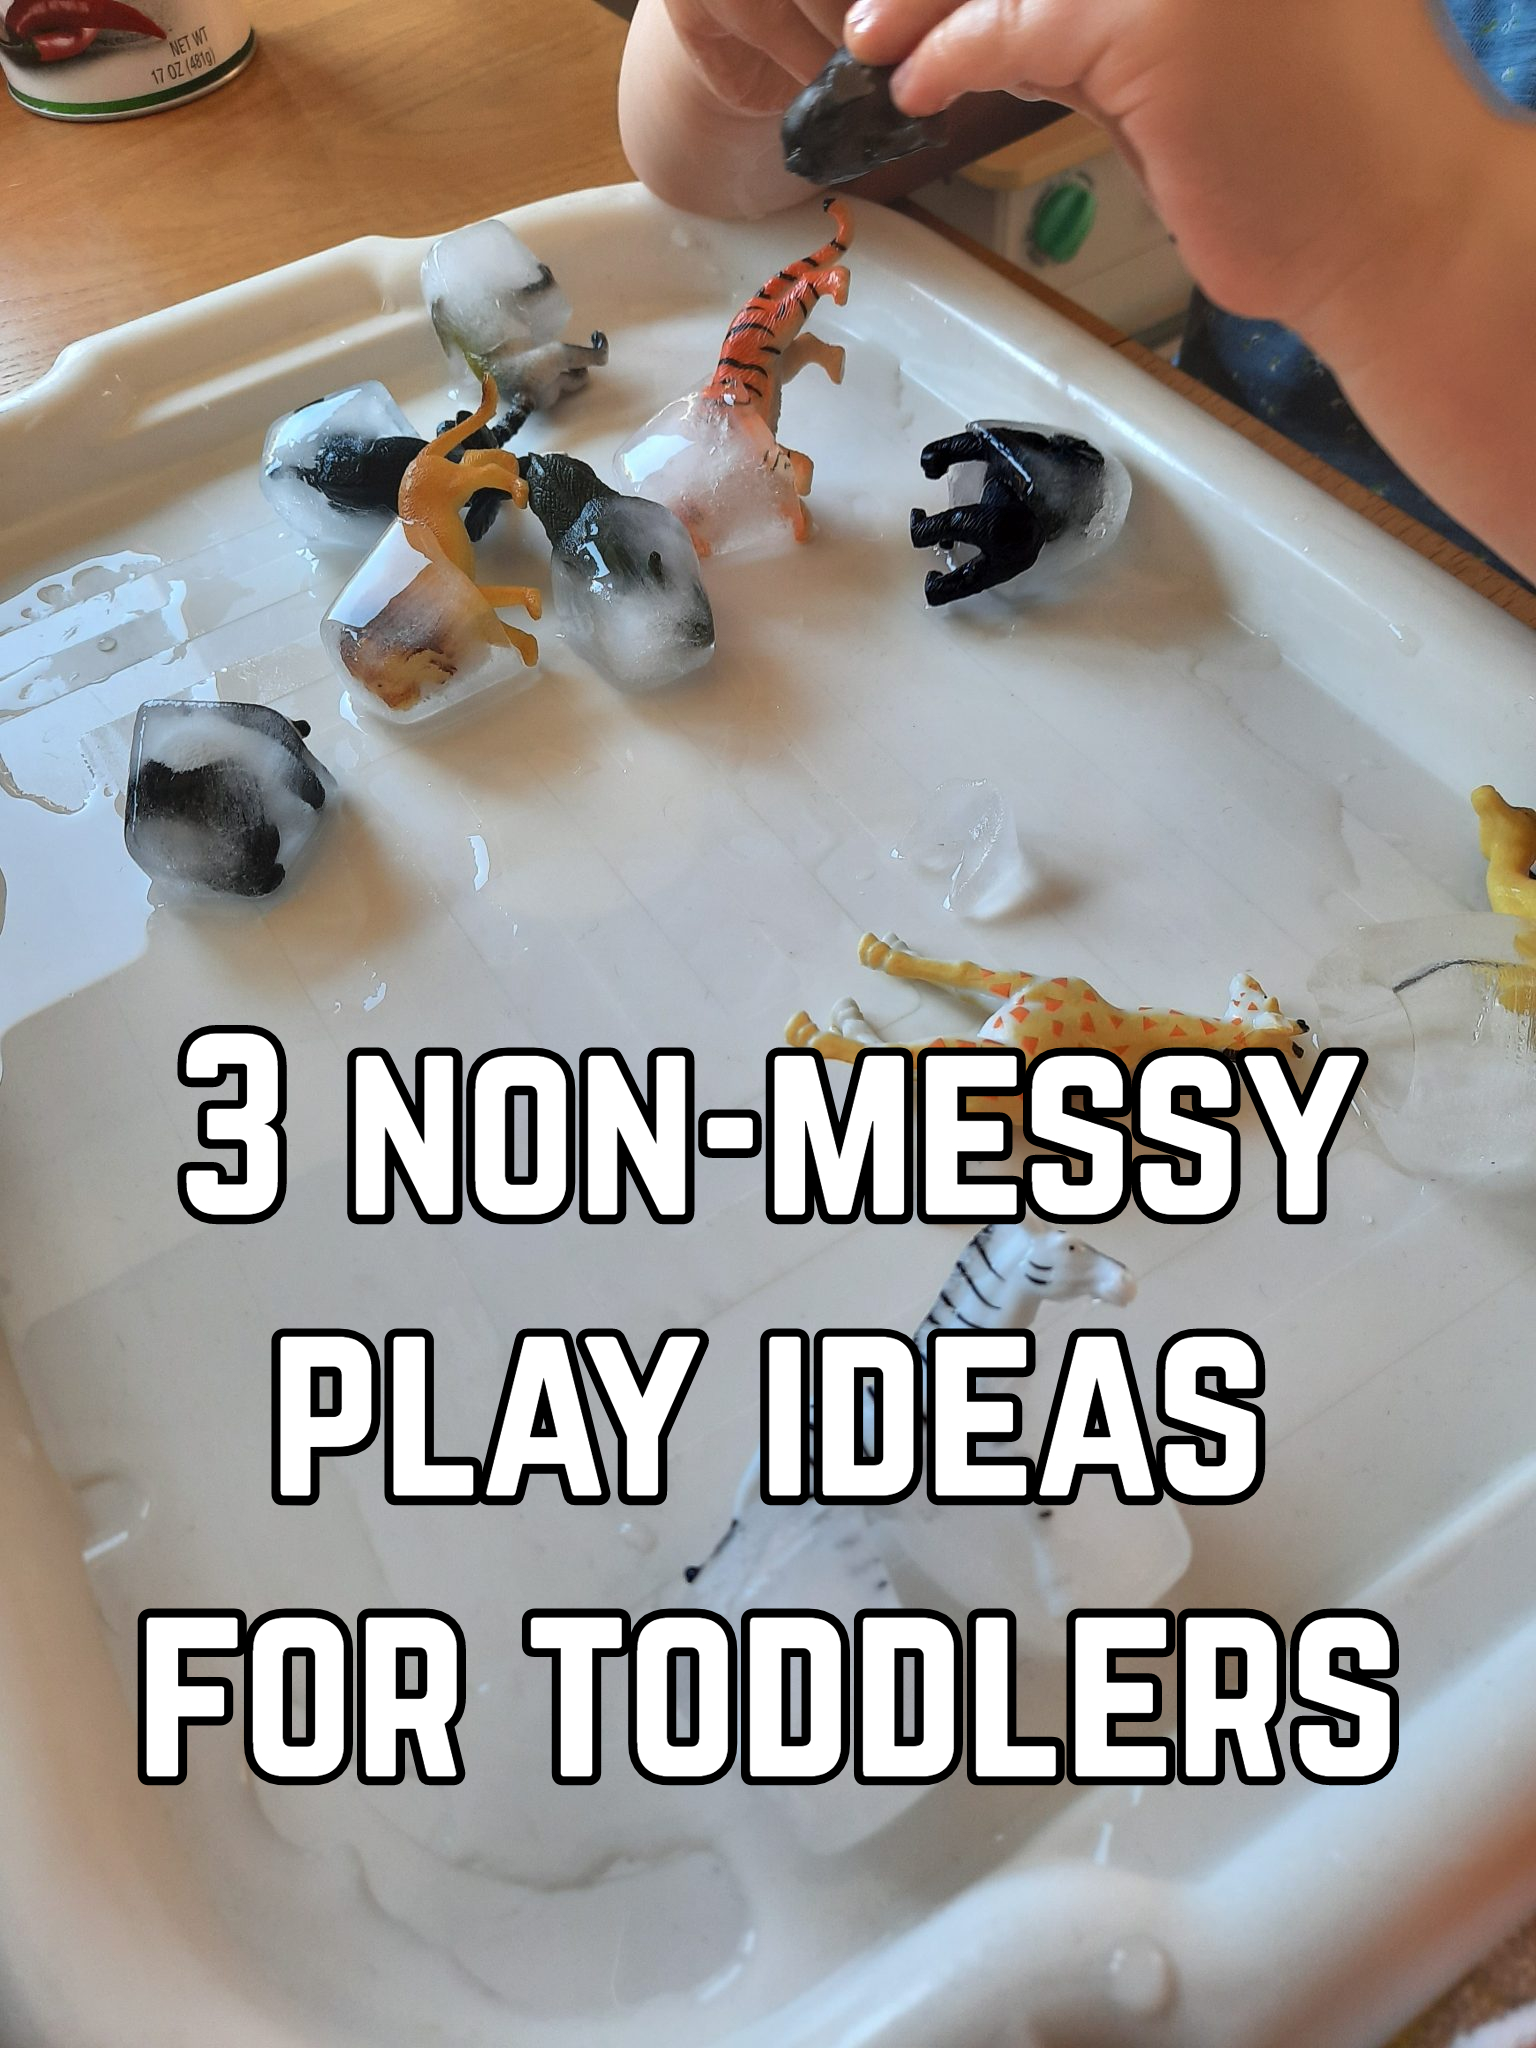 3 non-messy play ideas for toddlers